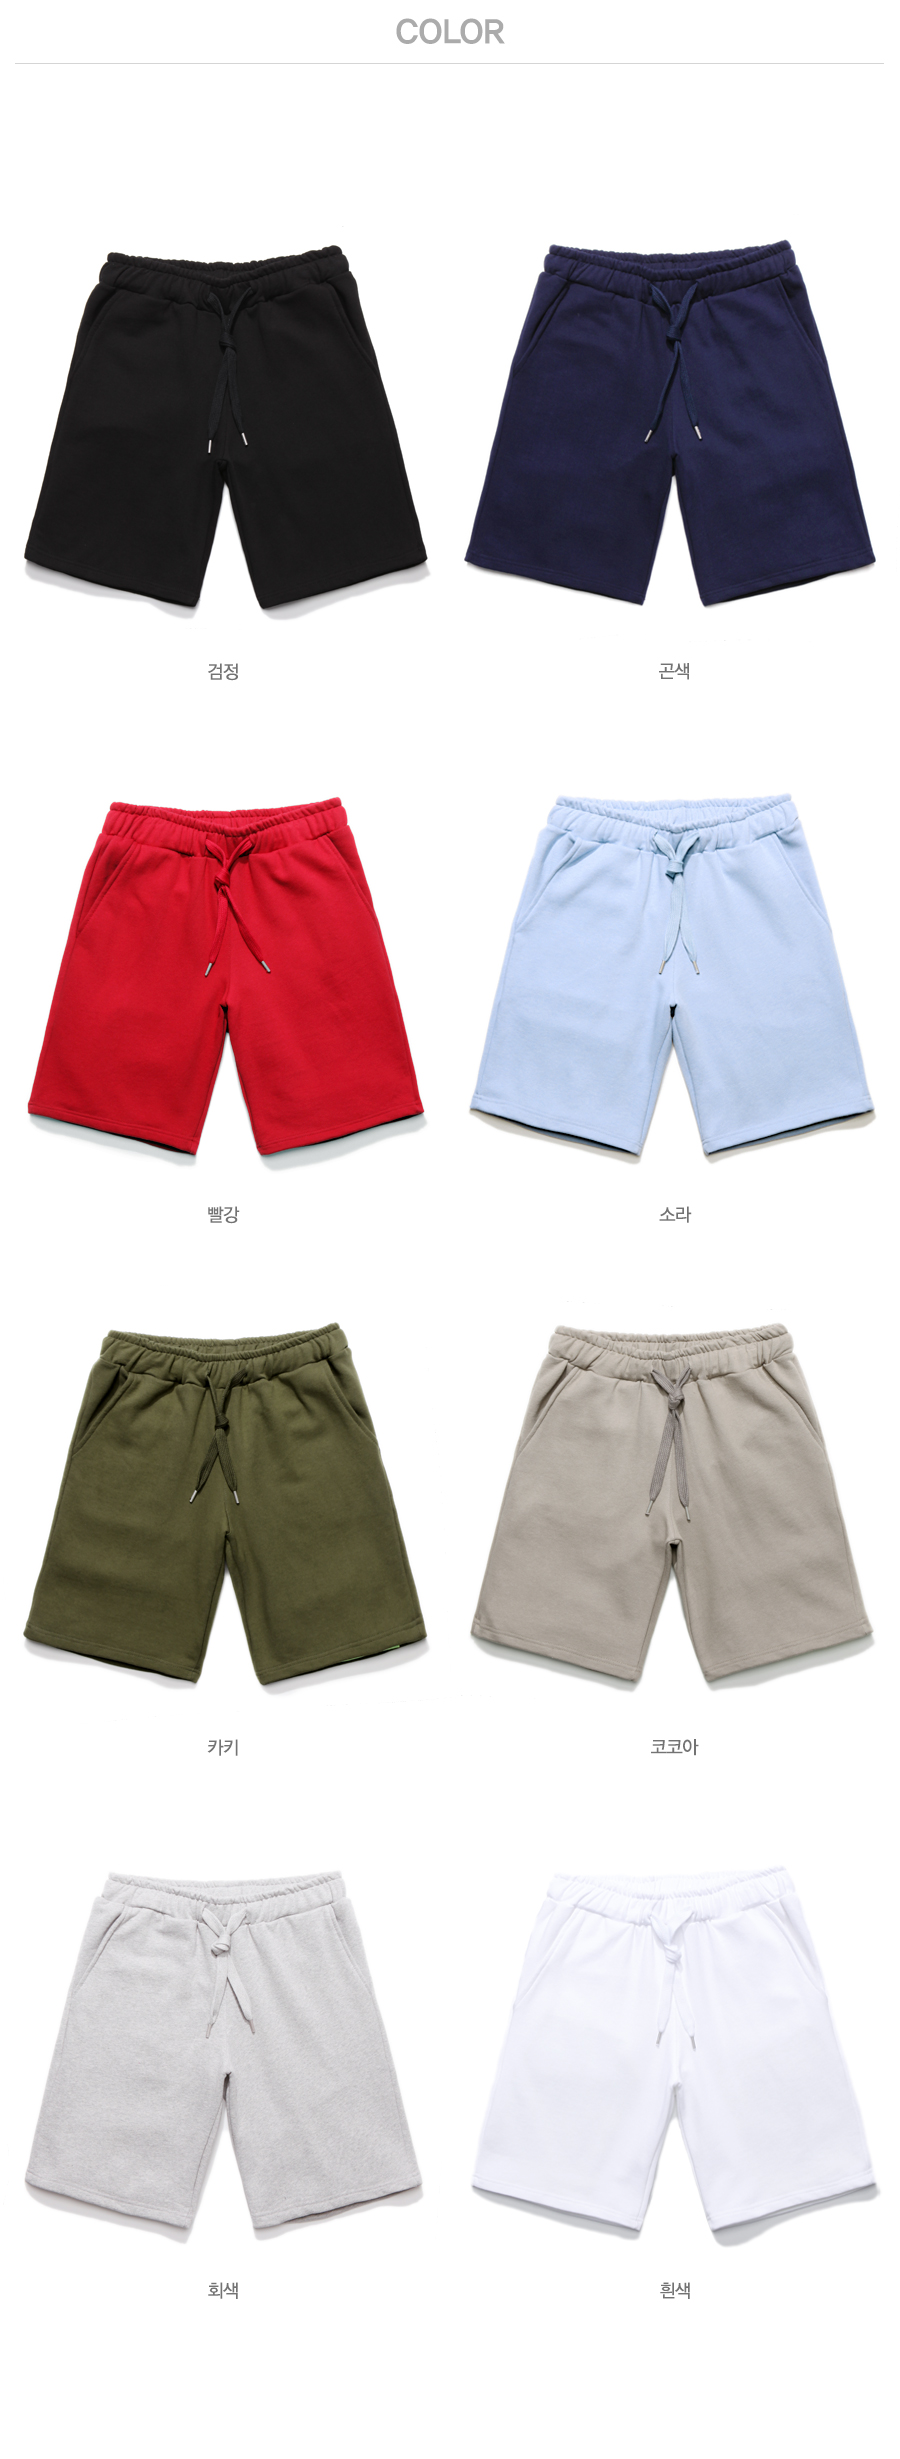 20180615_dy_classicjjuri_short_pants_detail_color_uk.jpg